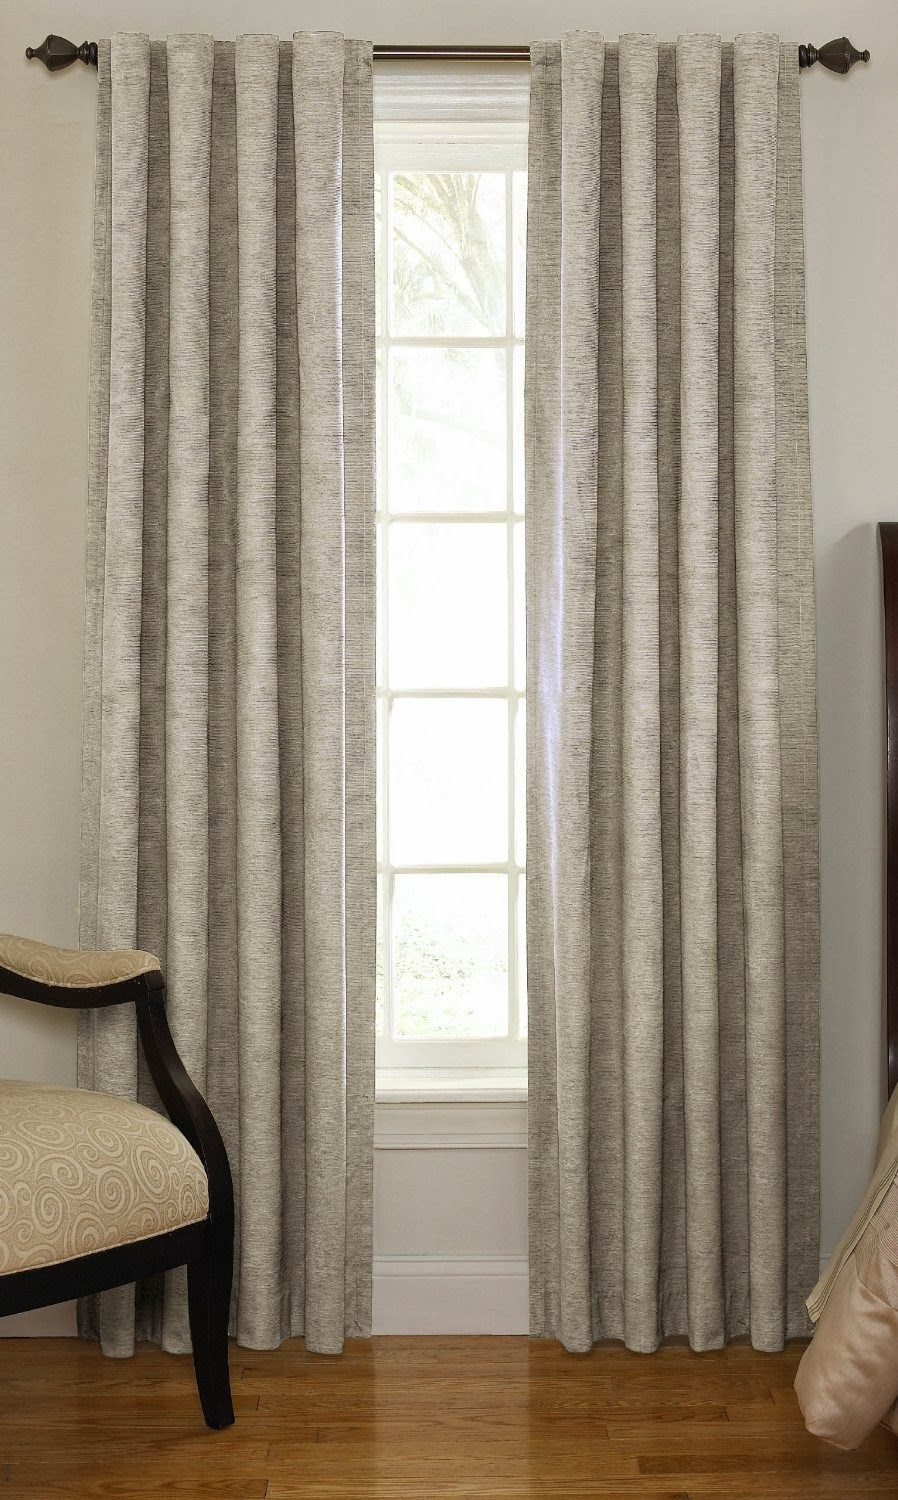 Buy Blackout Curtains | Cheap Blackout Curtains | Affordable Blackout Curtains